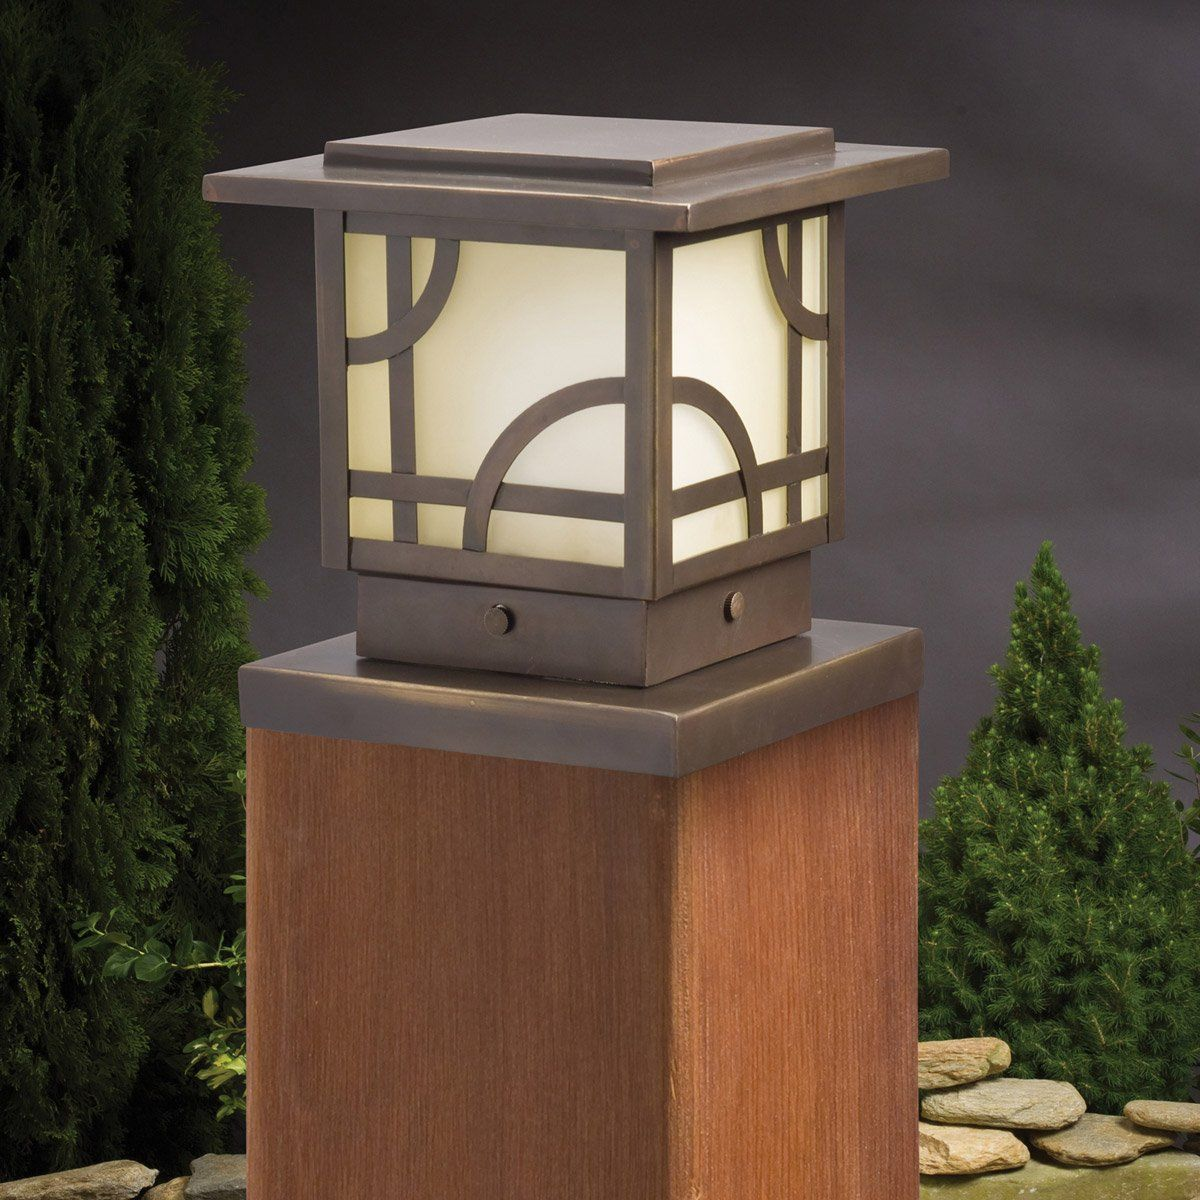 Kichler Lighting 15474oz Larkin Estate 12v 16 3 Watt Olde Bronze Landscape 12v Deck 6 25 Inch Deck Lighting Post Lights Deck Post Lights